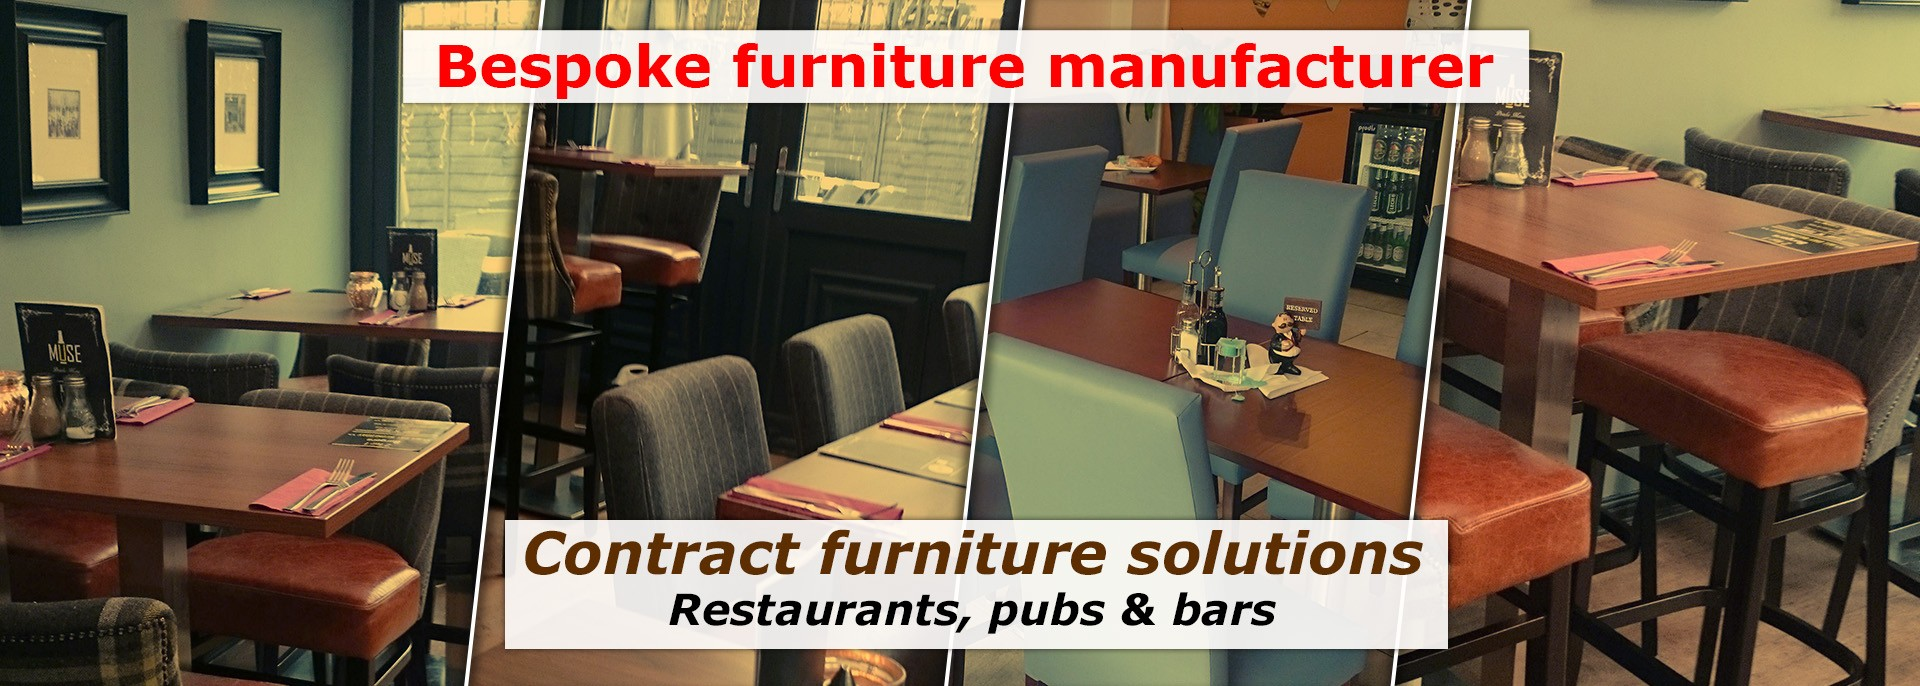 Contract furniture manufacturer Manchester UK